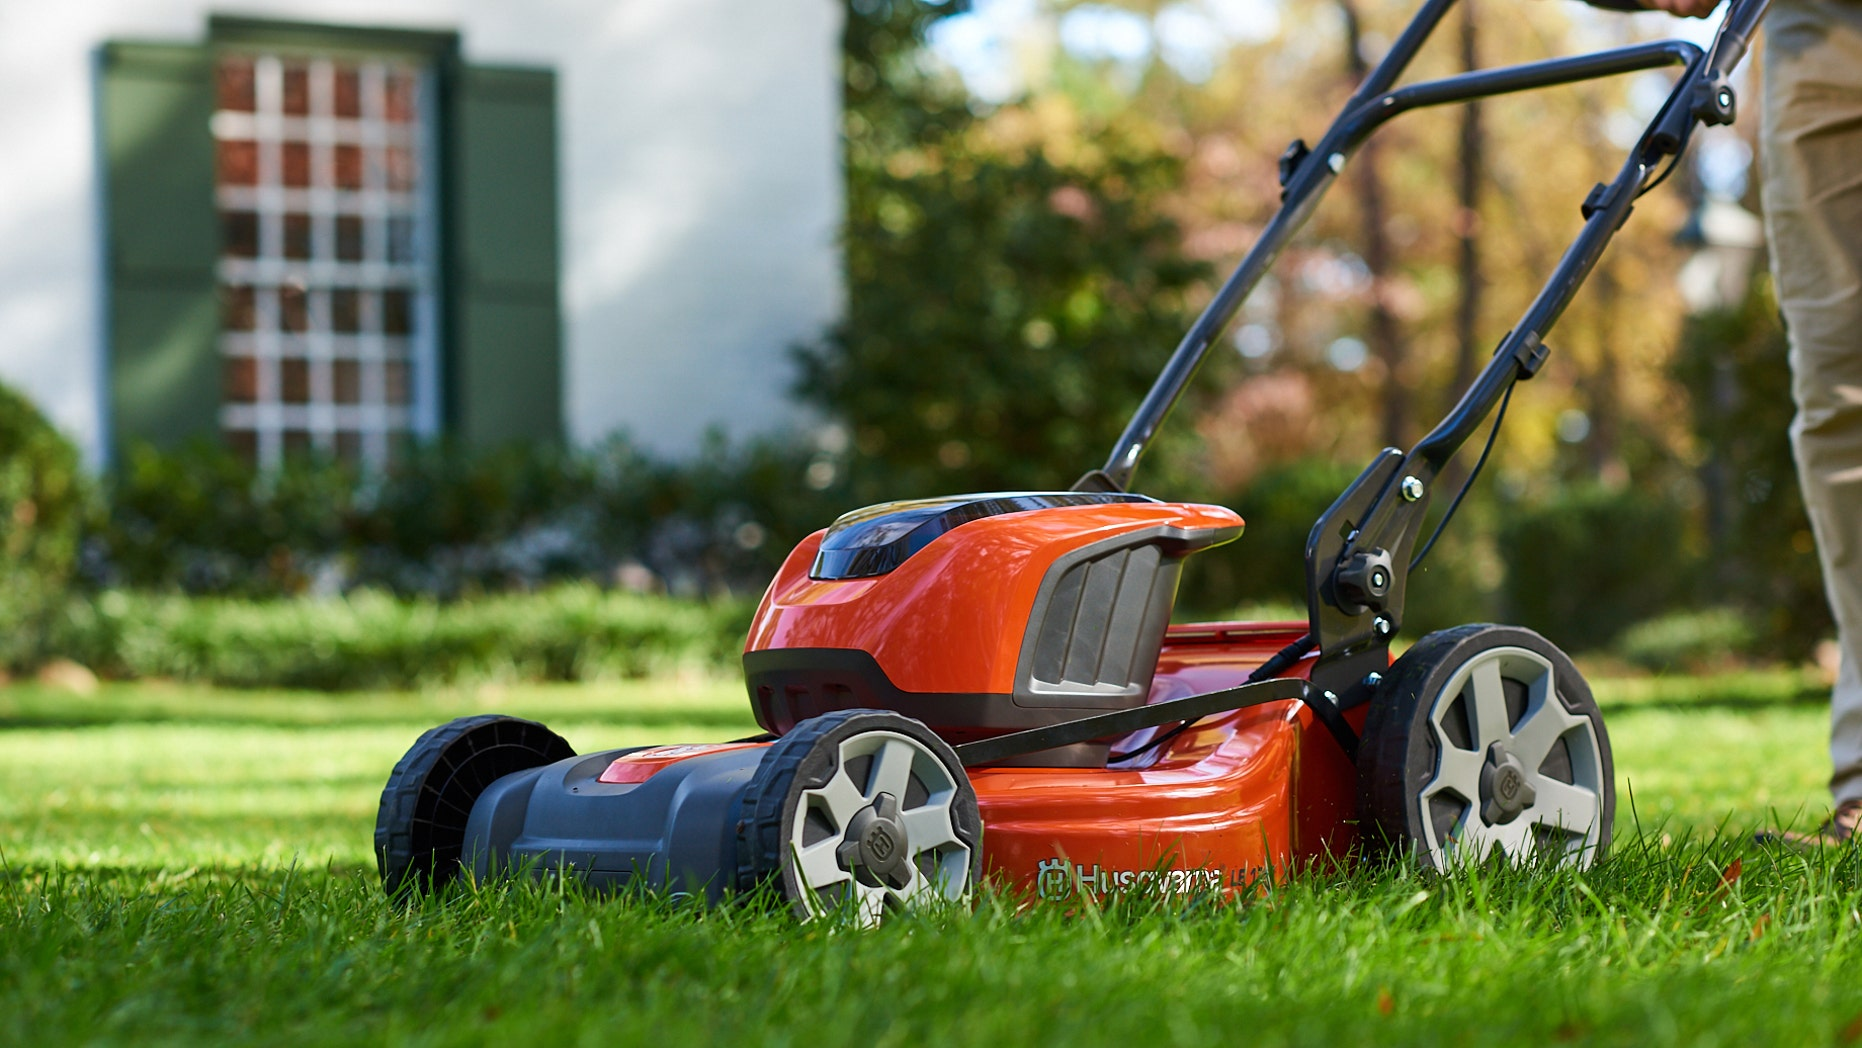 Husqvarna LE 221R Battery-Powered Walk Mower (Husqvarna)